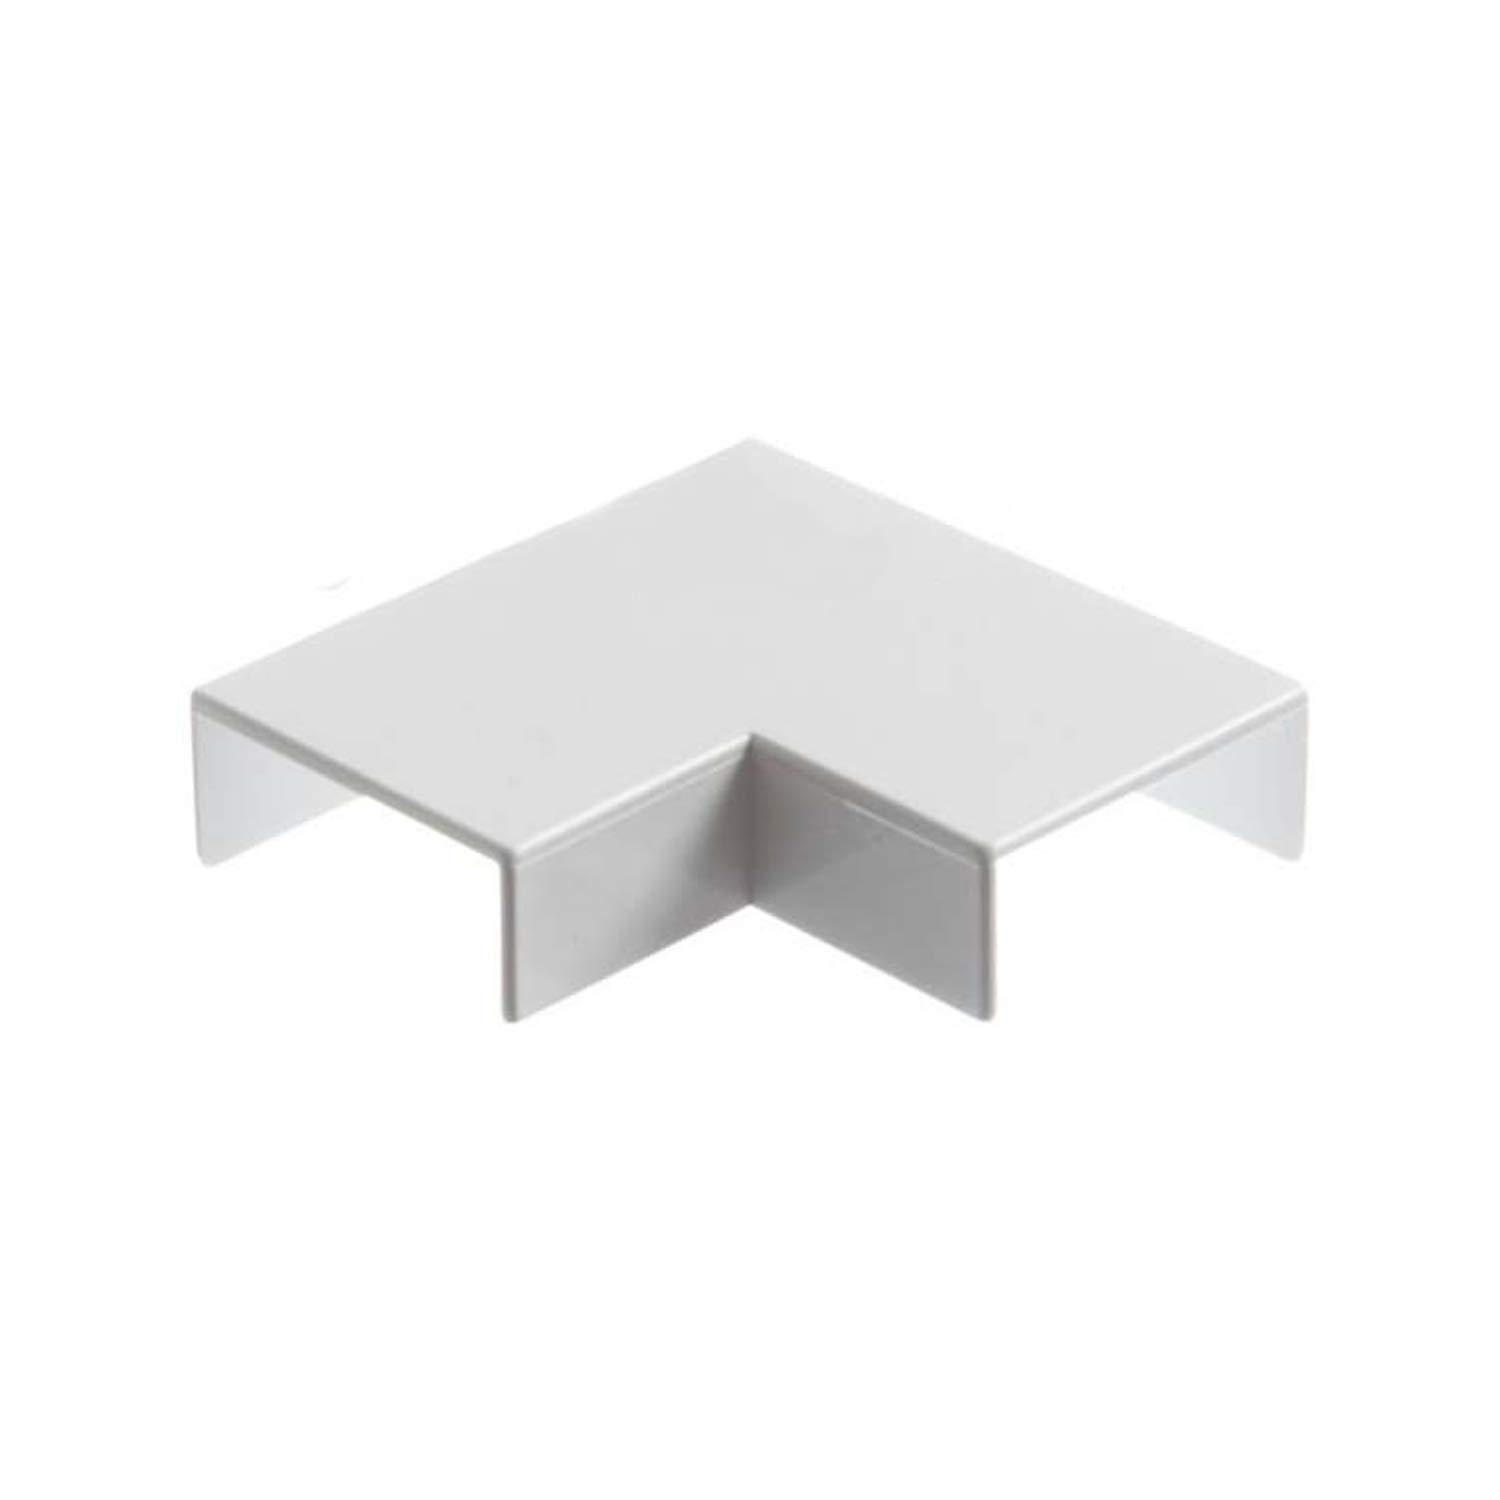 Electrical Trunking Flat 90° Angle (25 x 16mm) TVTech